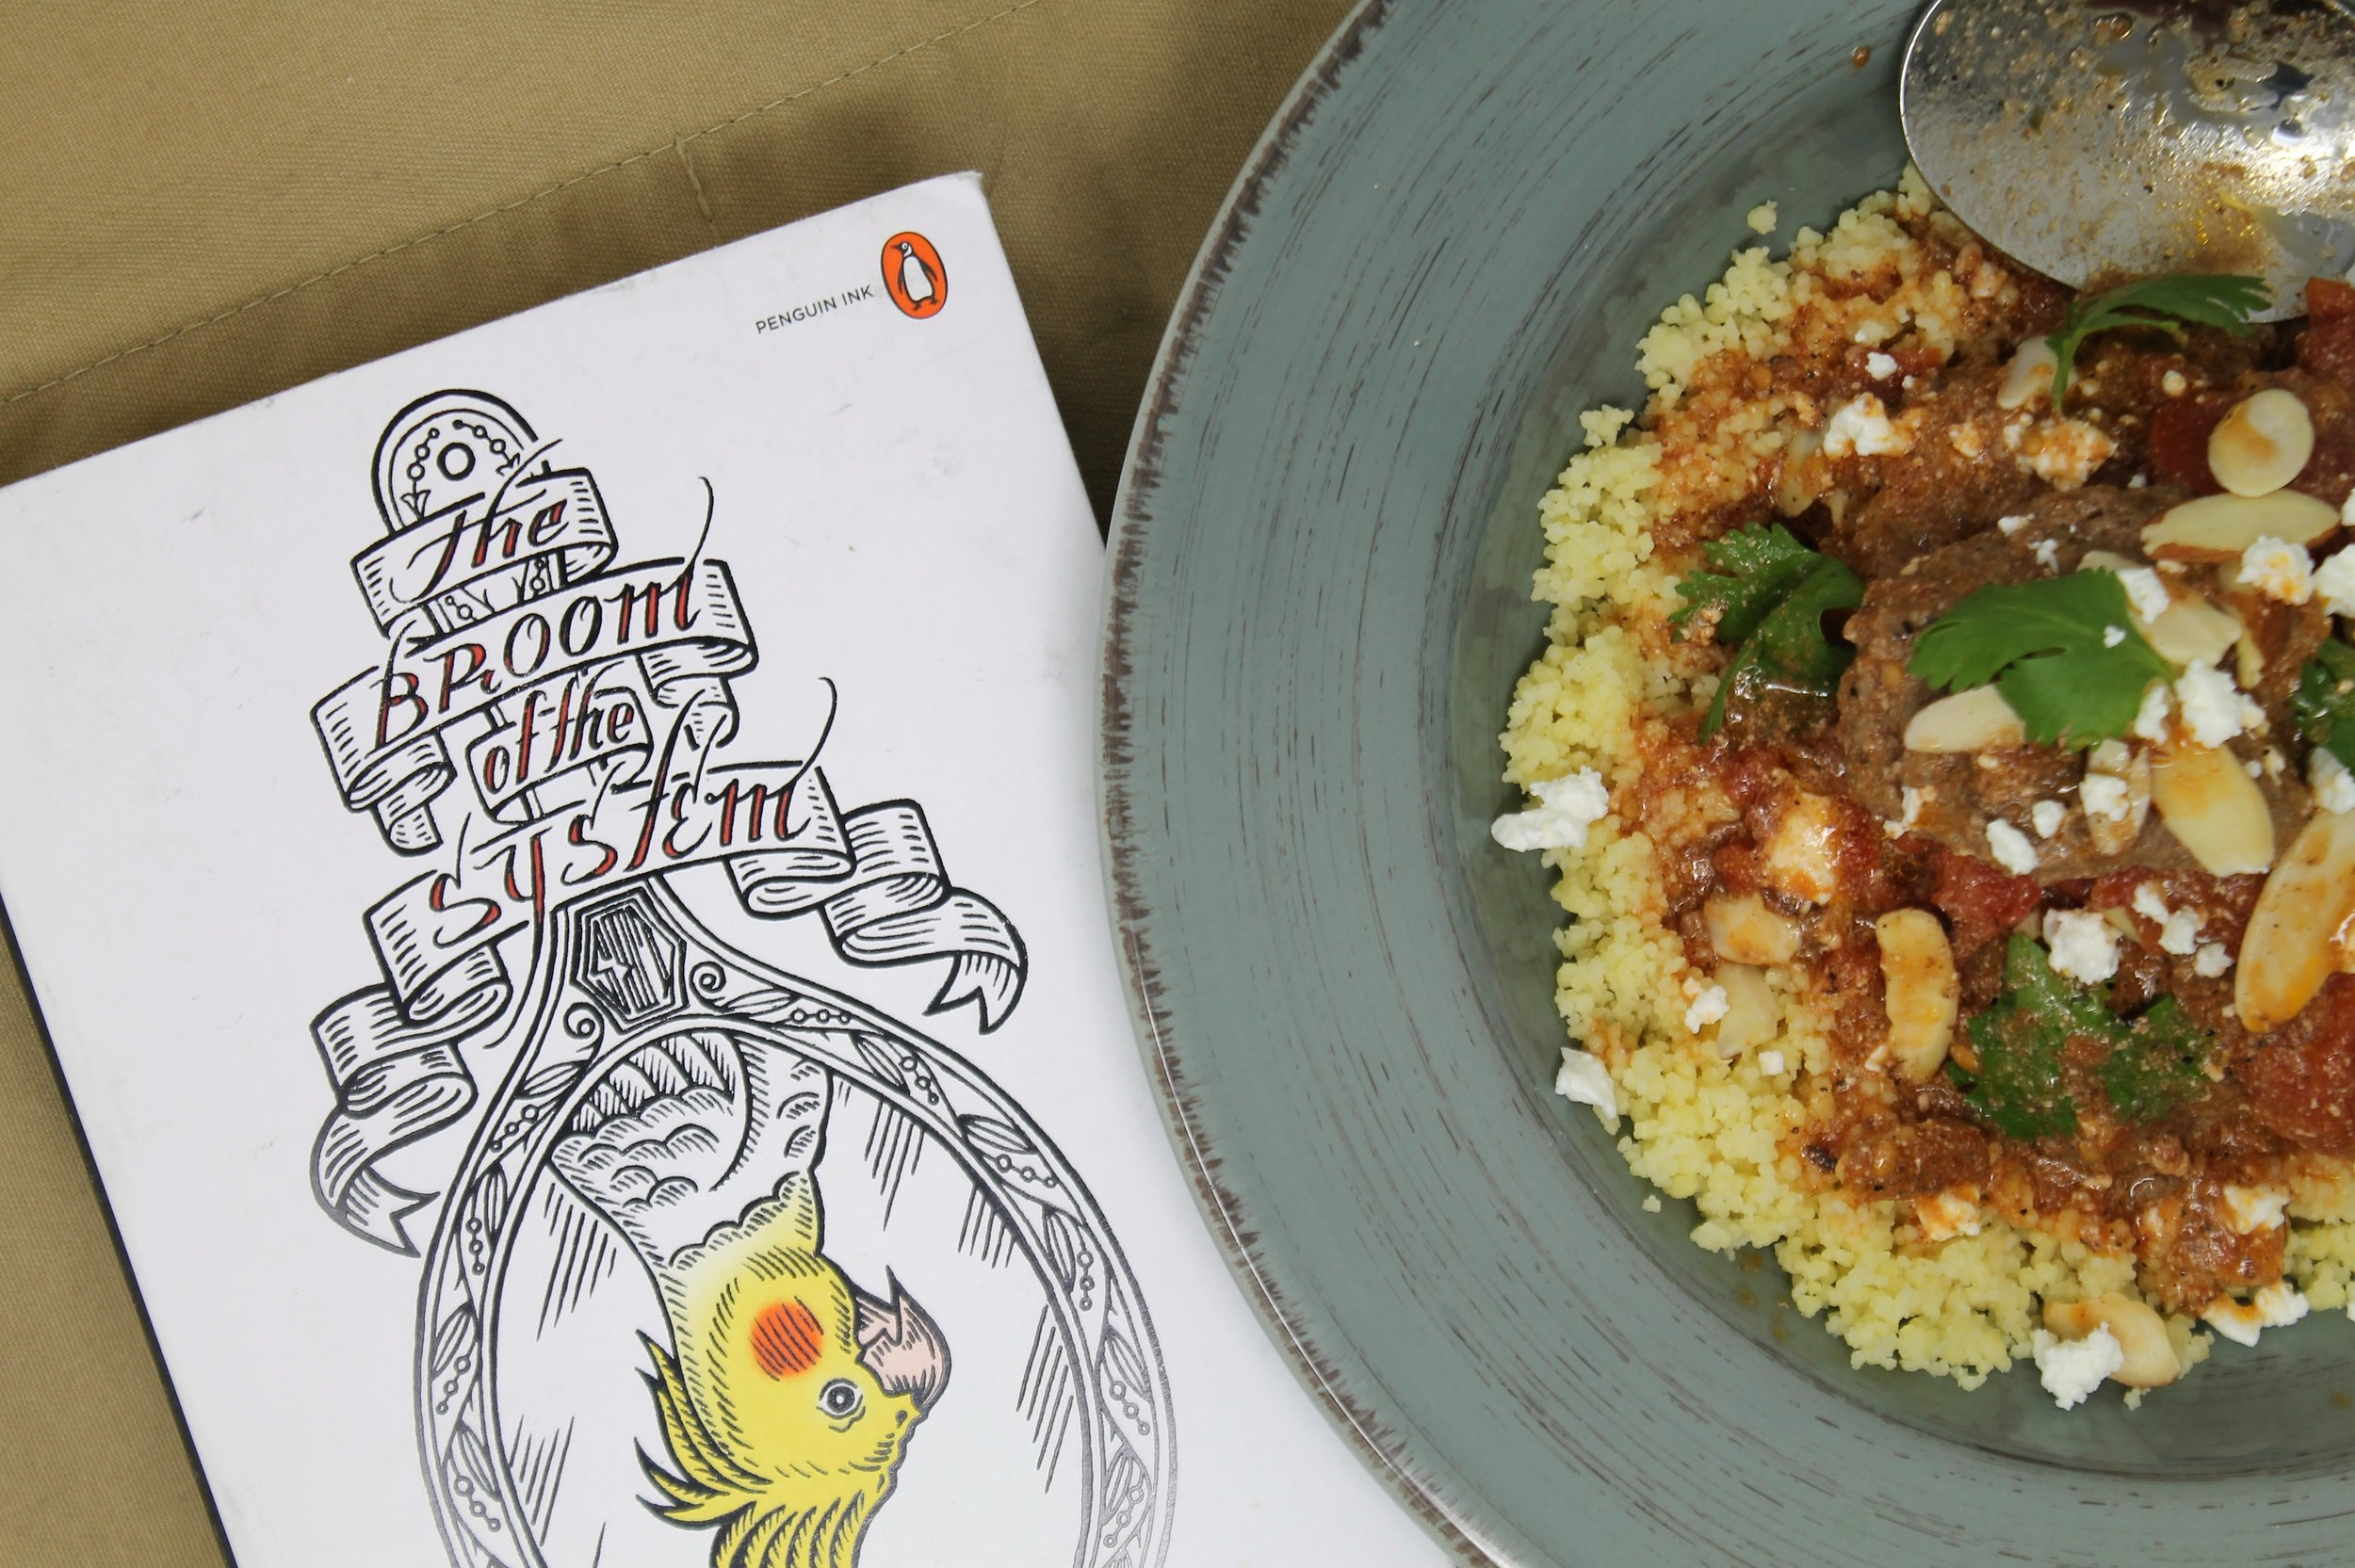 David Foster Wallace's Broom of the System and Moroccan Meatballs